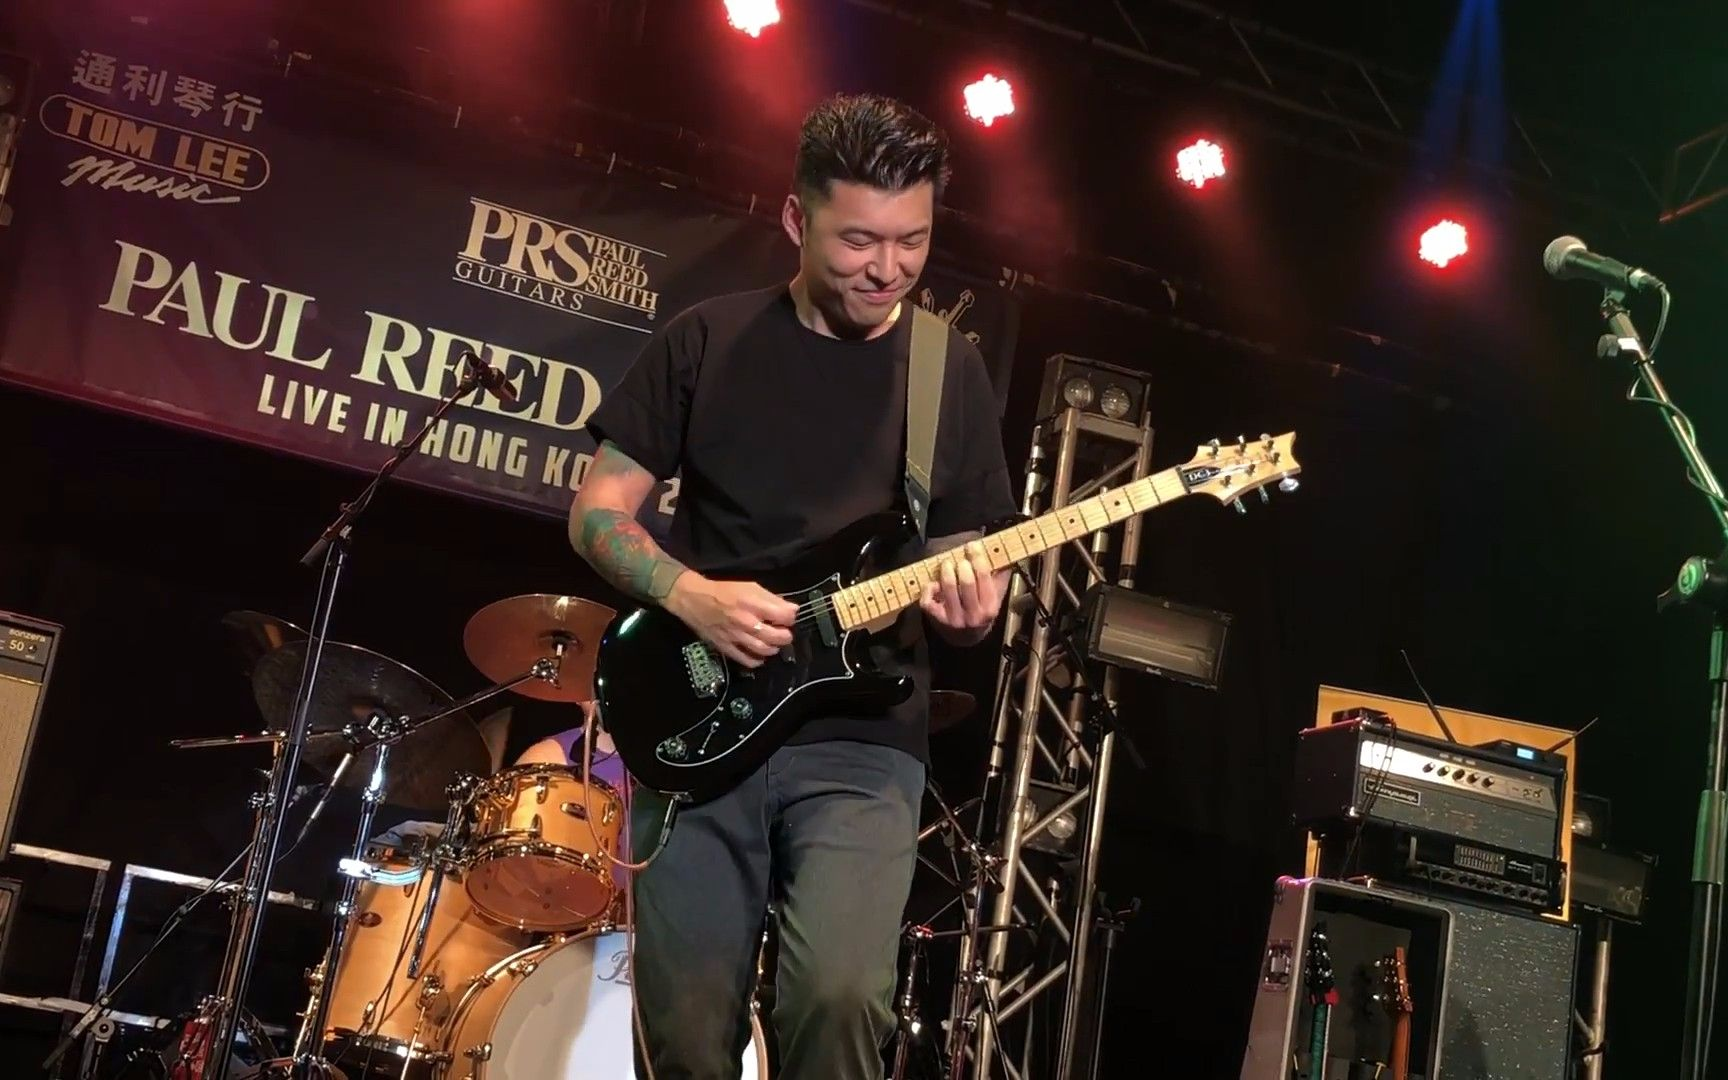 瞿俊僖 (Jason Kui) - Now! You! Know! (Paul Reed Smith Live in Hong Kong)